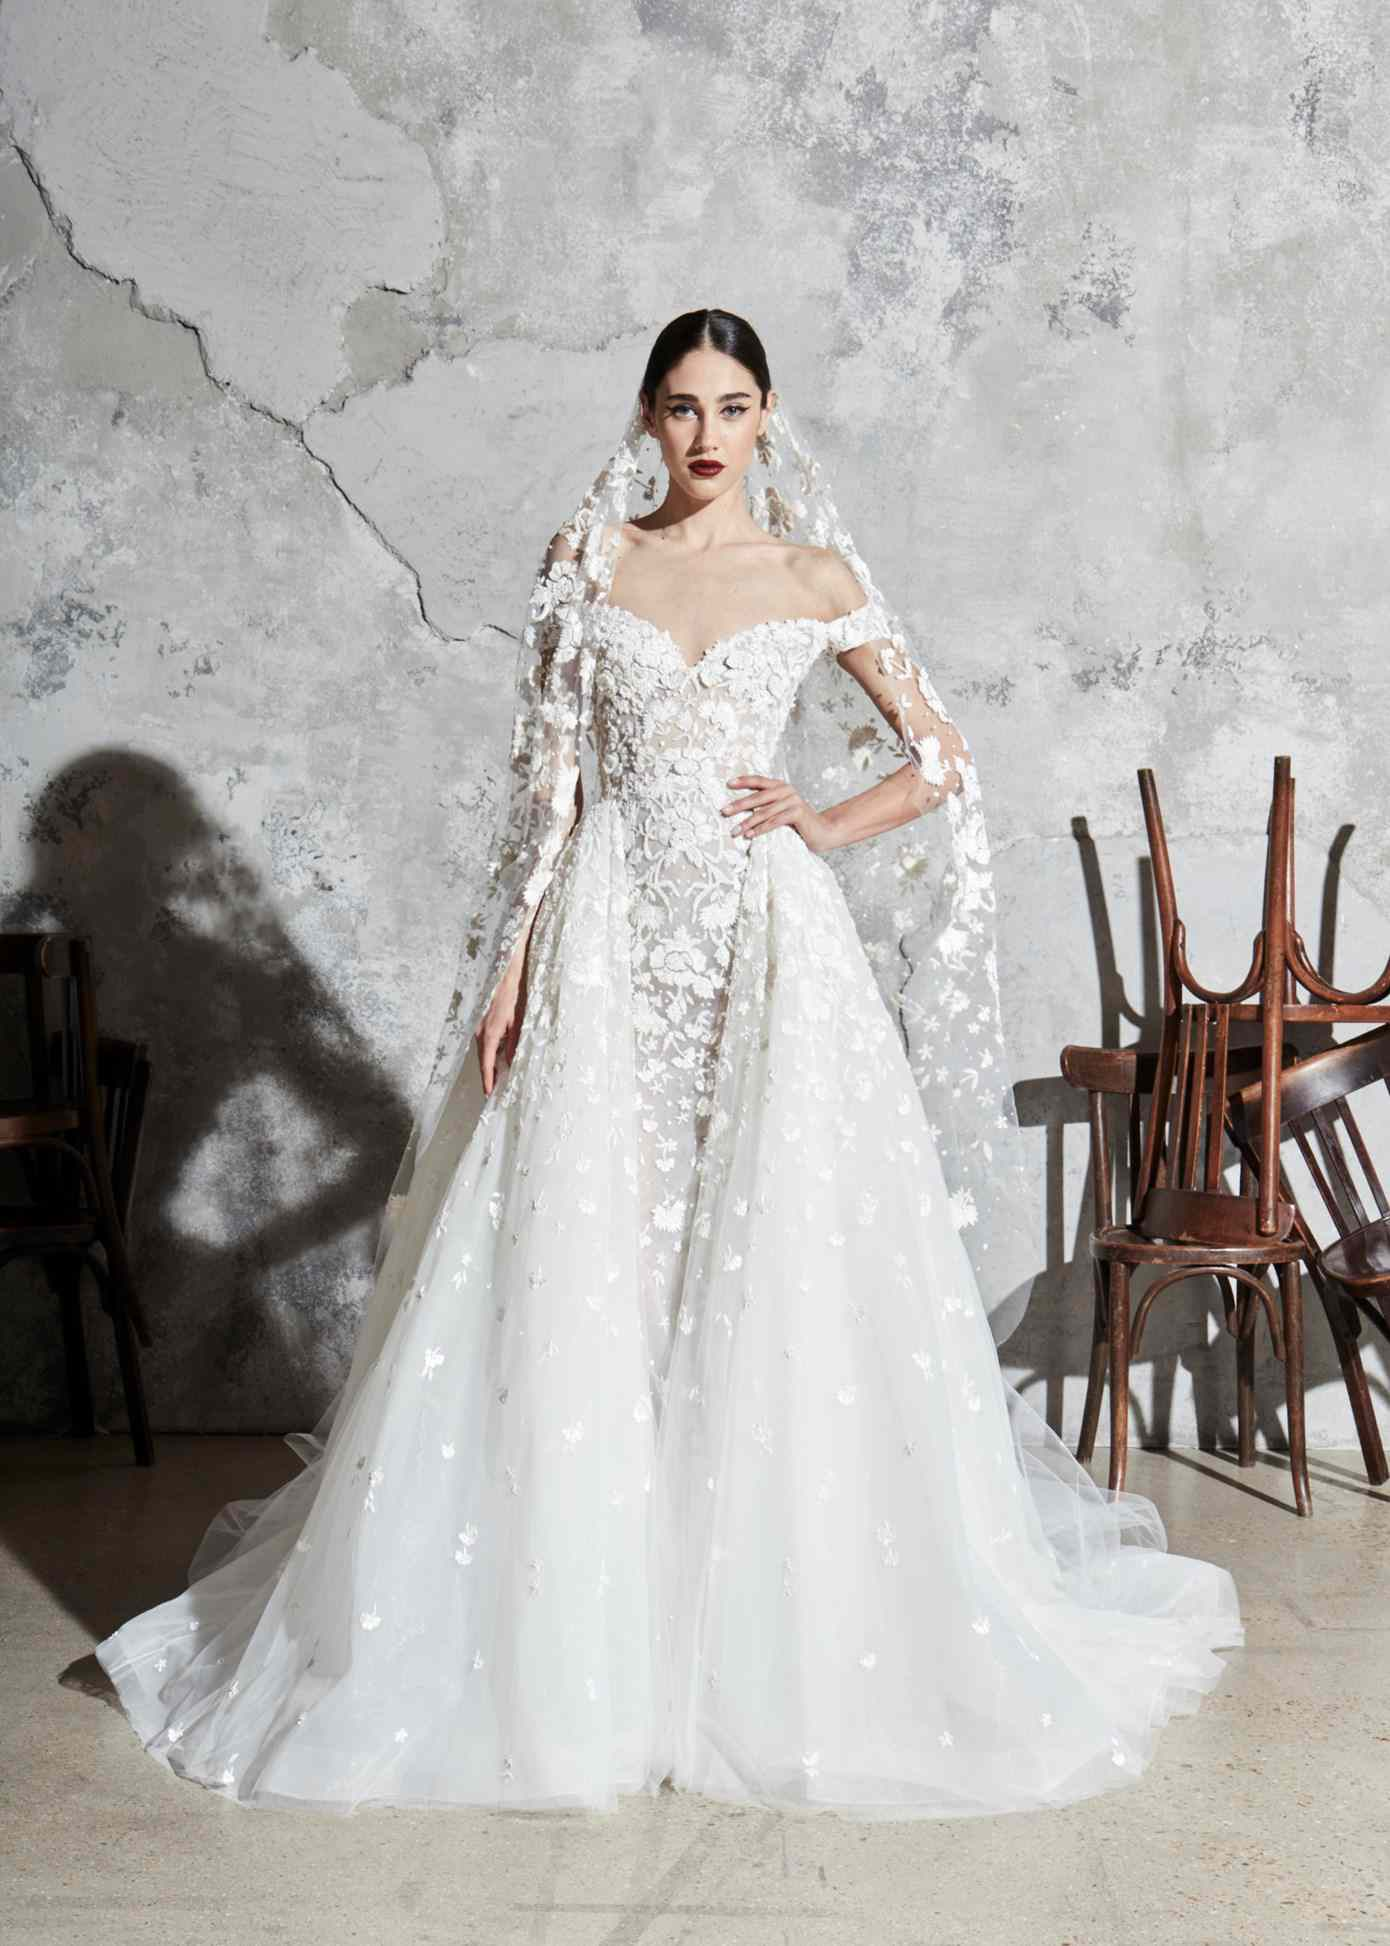 Model in off-the-shoulder tulle ballgown with a sweetheart neckline, floral embroidery and appliques with a matching veil